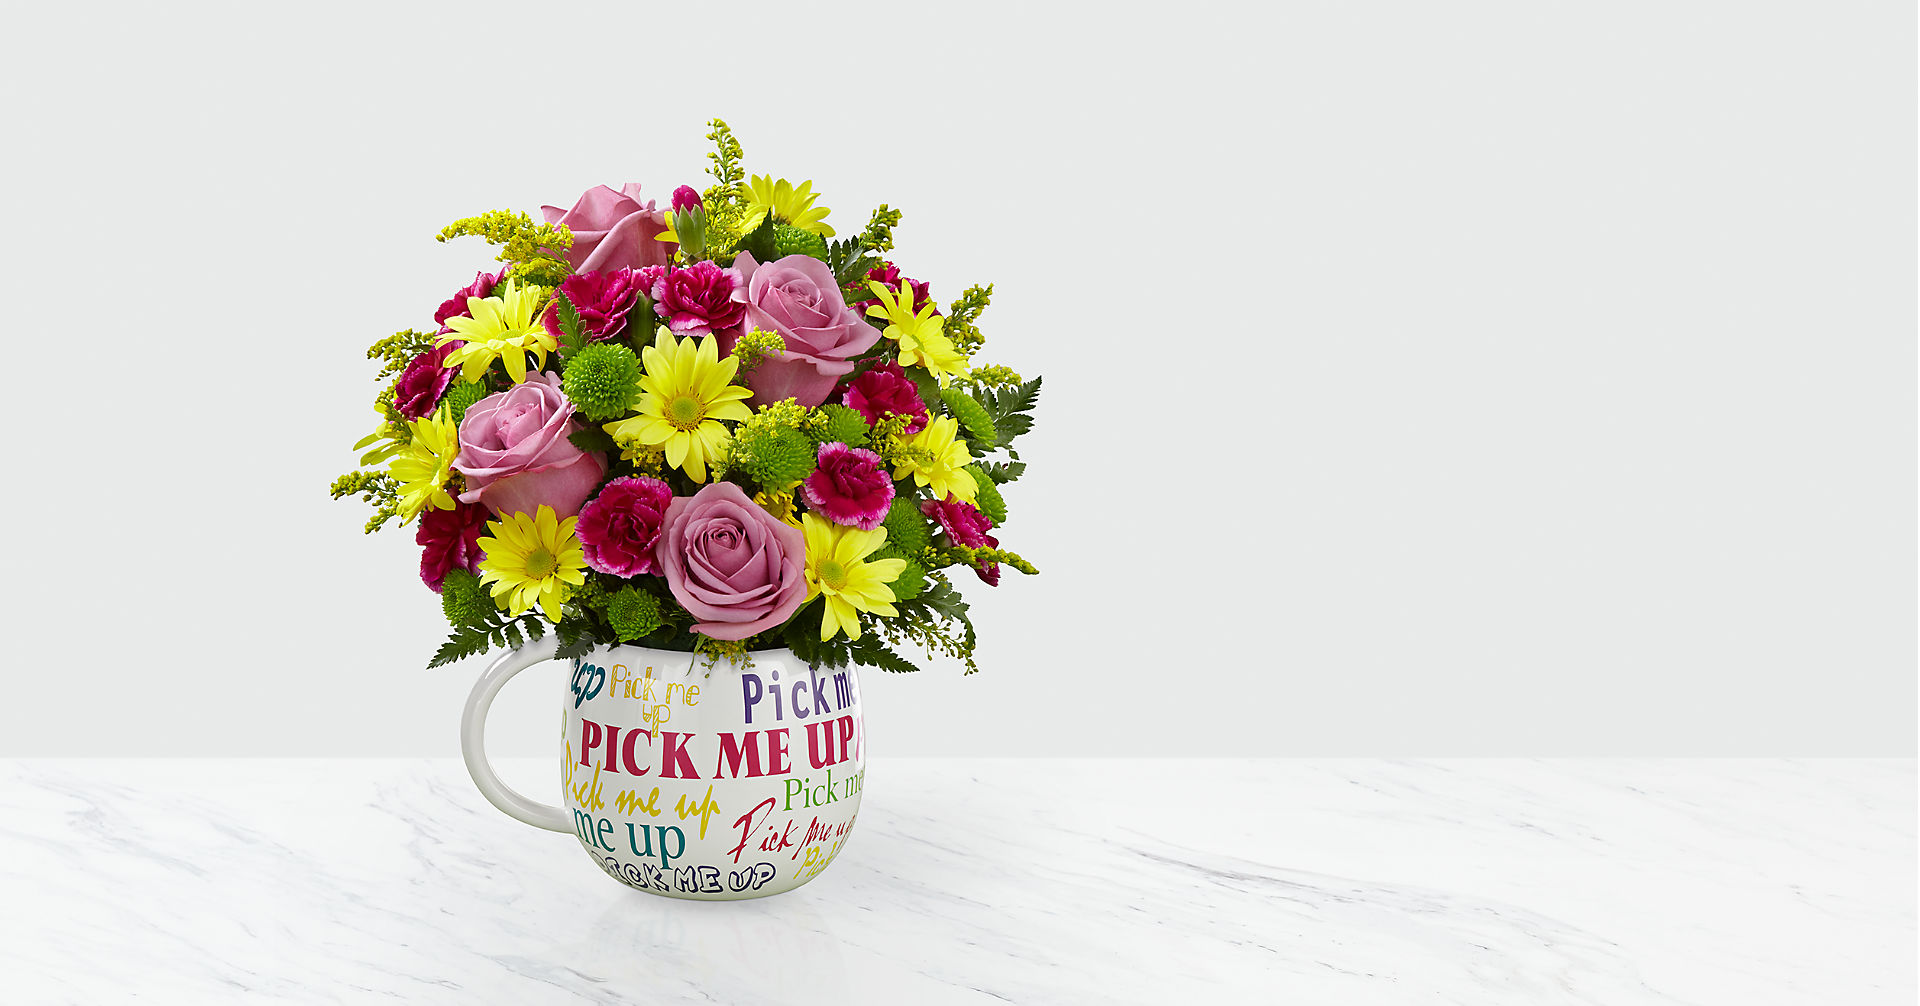 Pick-Me-Up® Bouquet - Image 1 Of 3